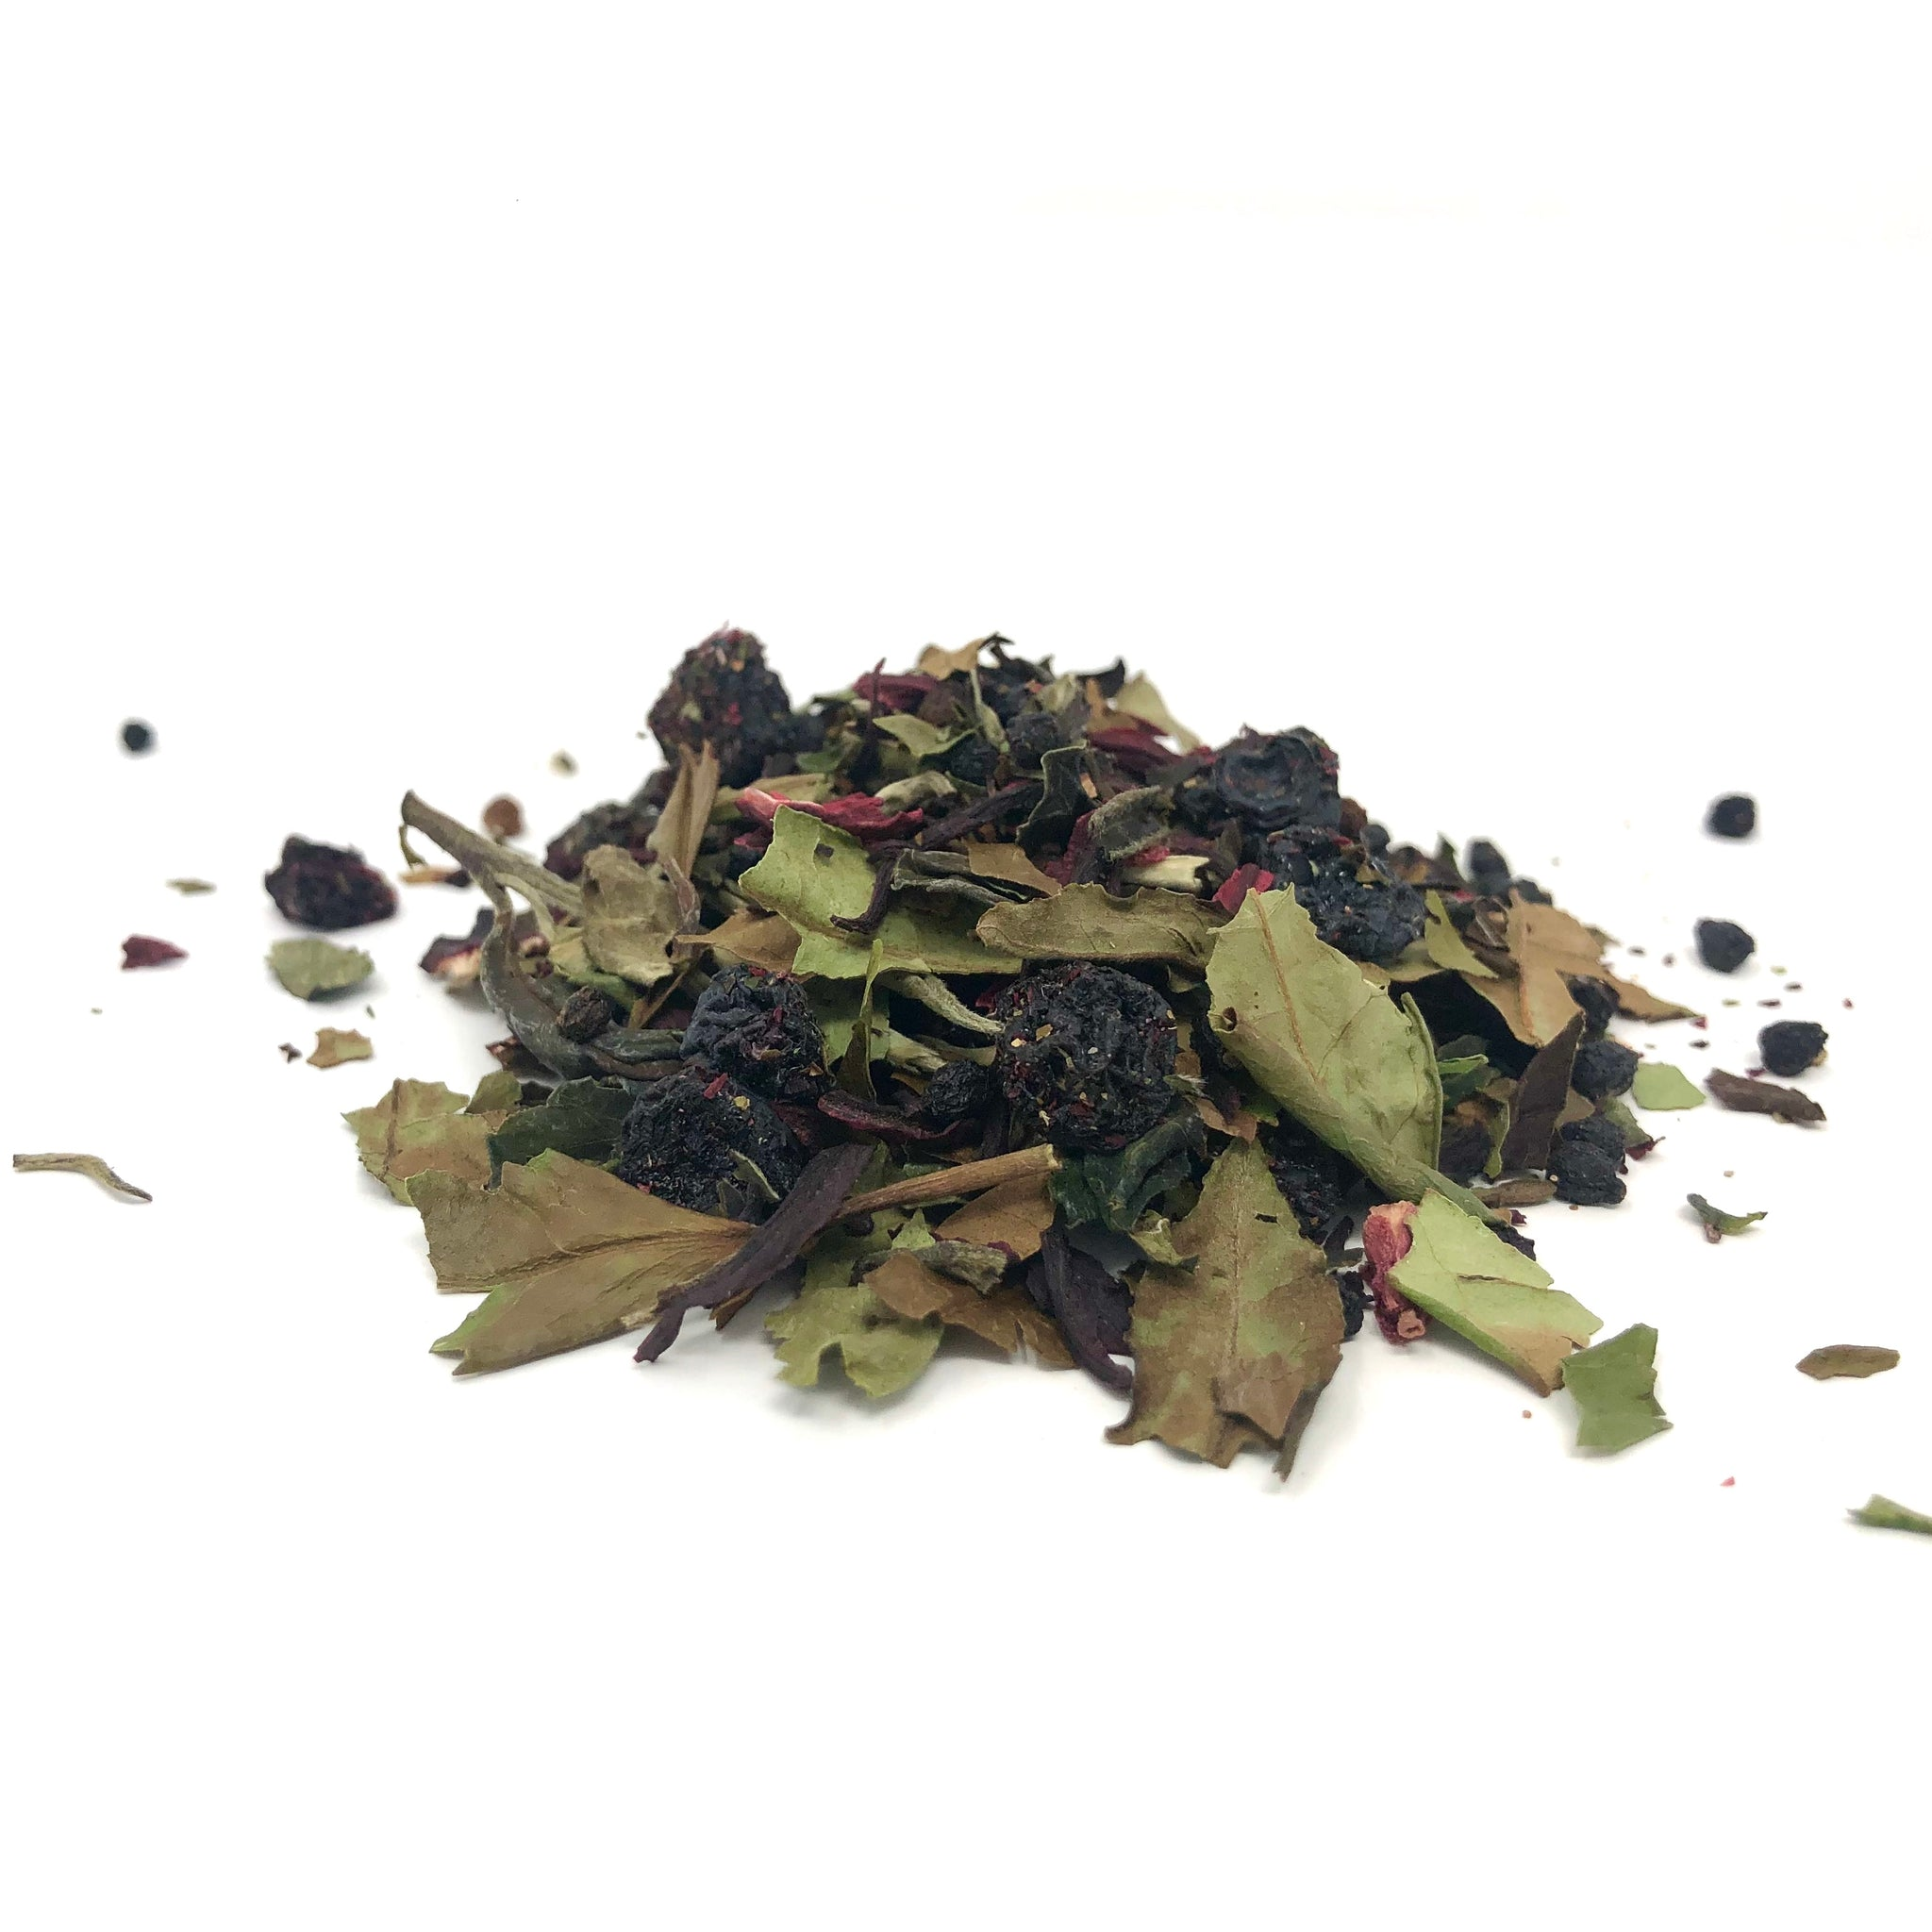 Saltery Bay Blueberry White (White Tea Blend)